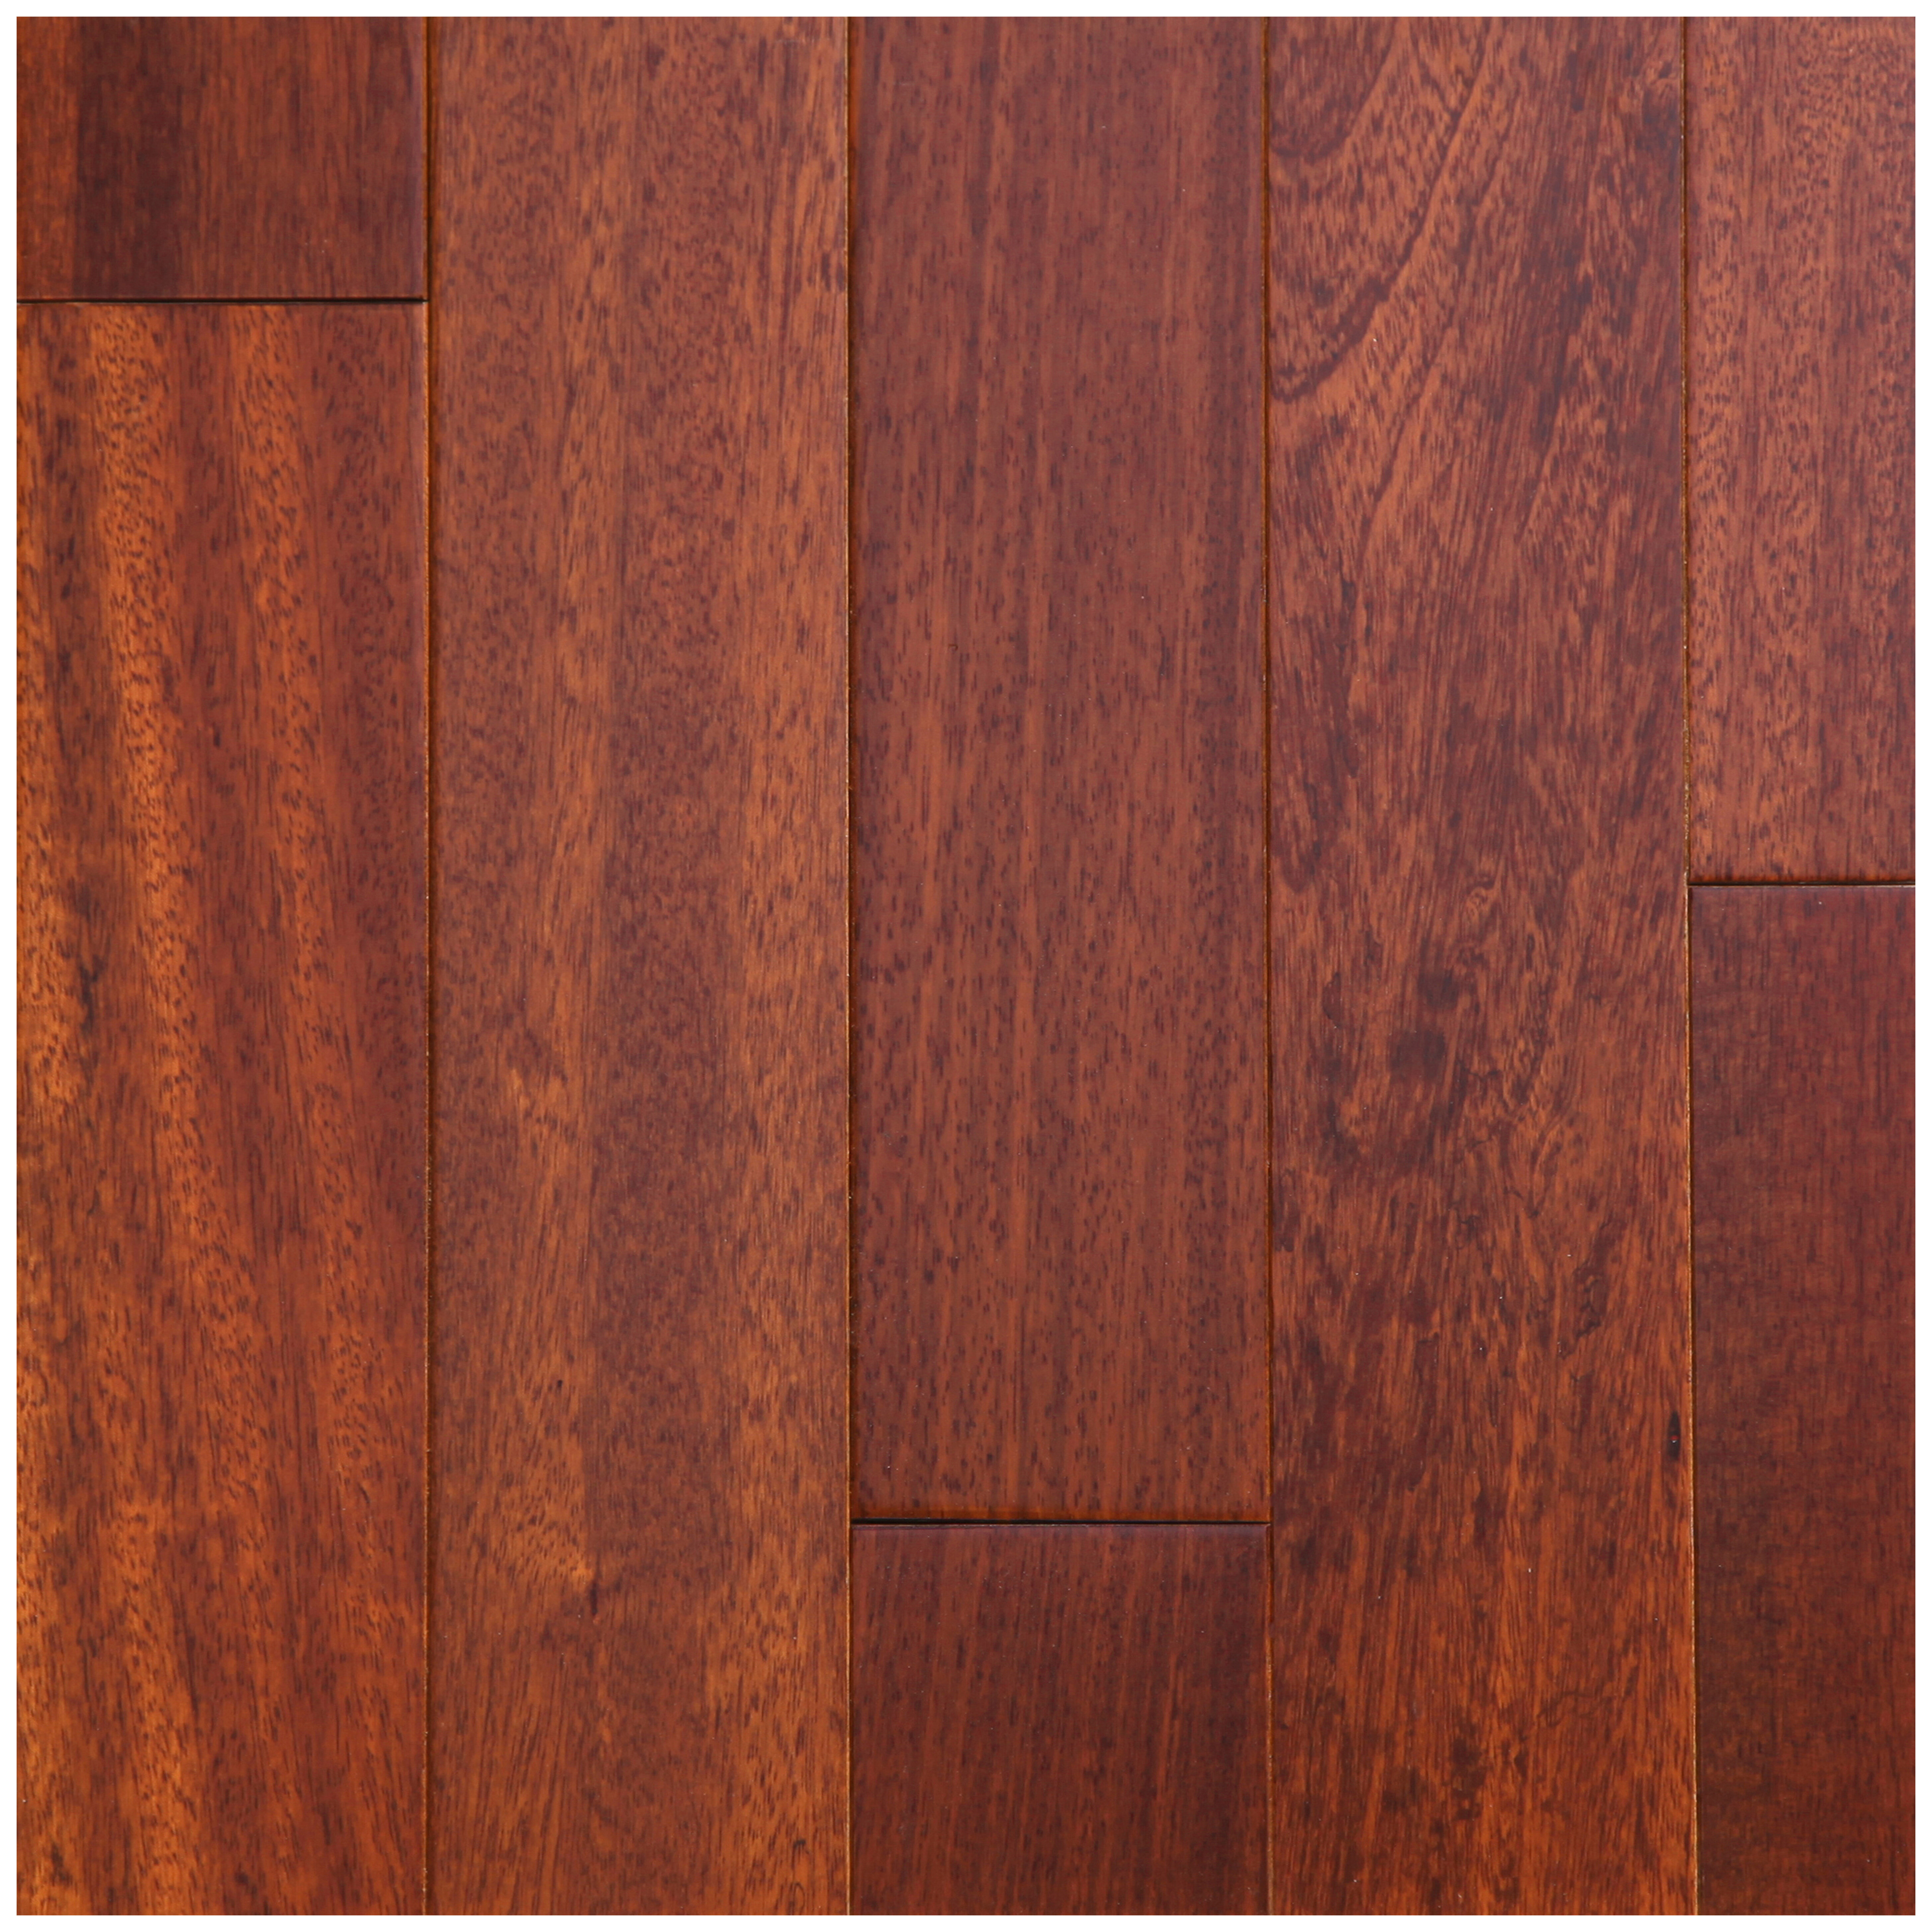 South American Legends Brazilian Cherry 1 2 Thick X 3 5 8 Wide Varying Length Engineered Hardwood Flooring